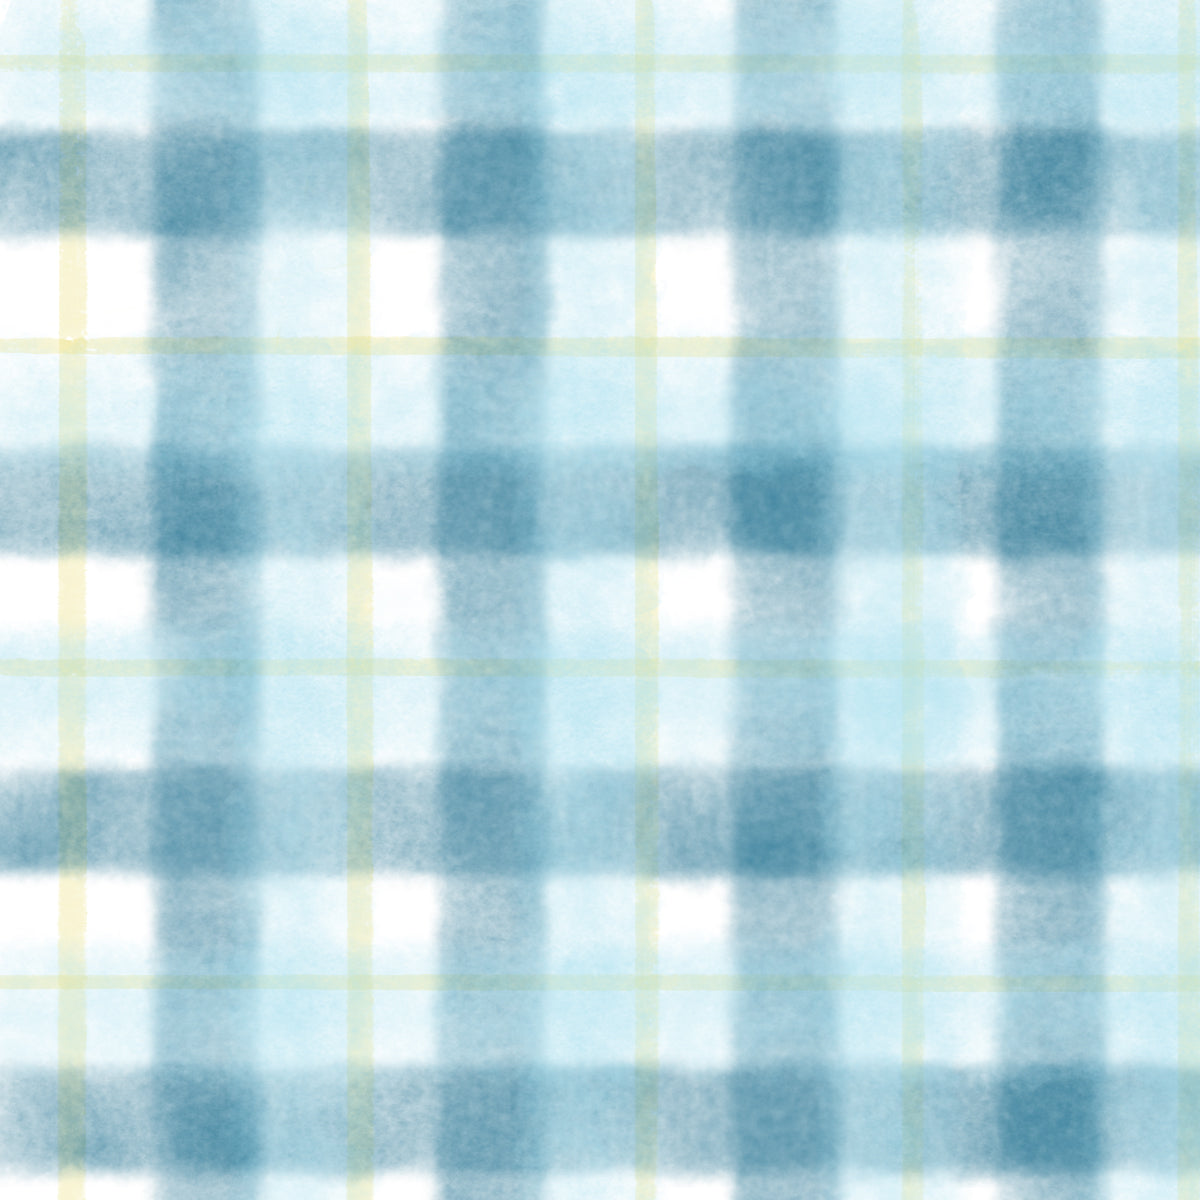 FREE: Cloudy Gingham Situation Phone Wallpaper